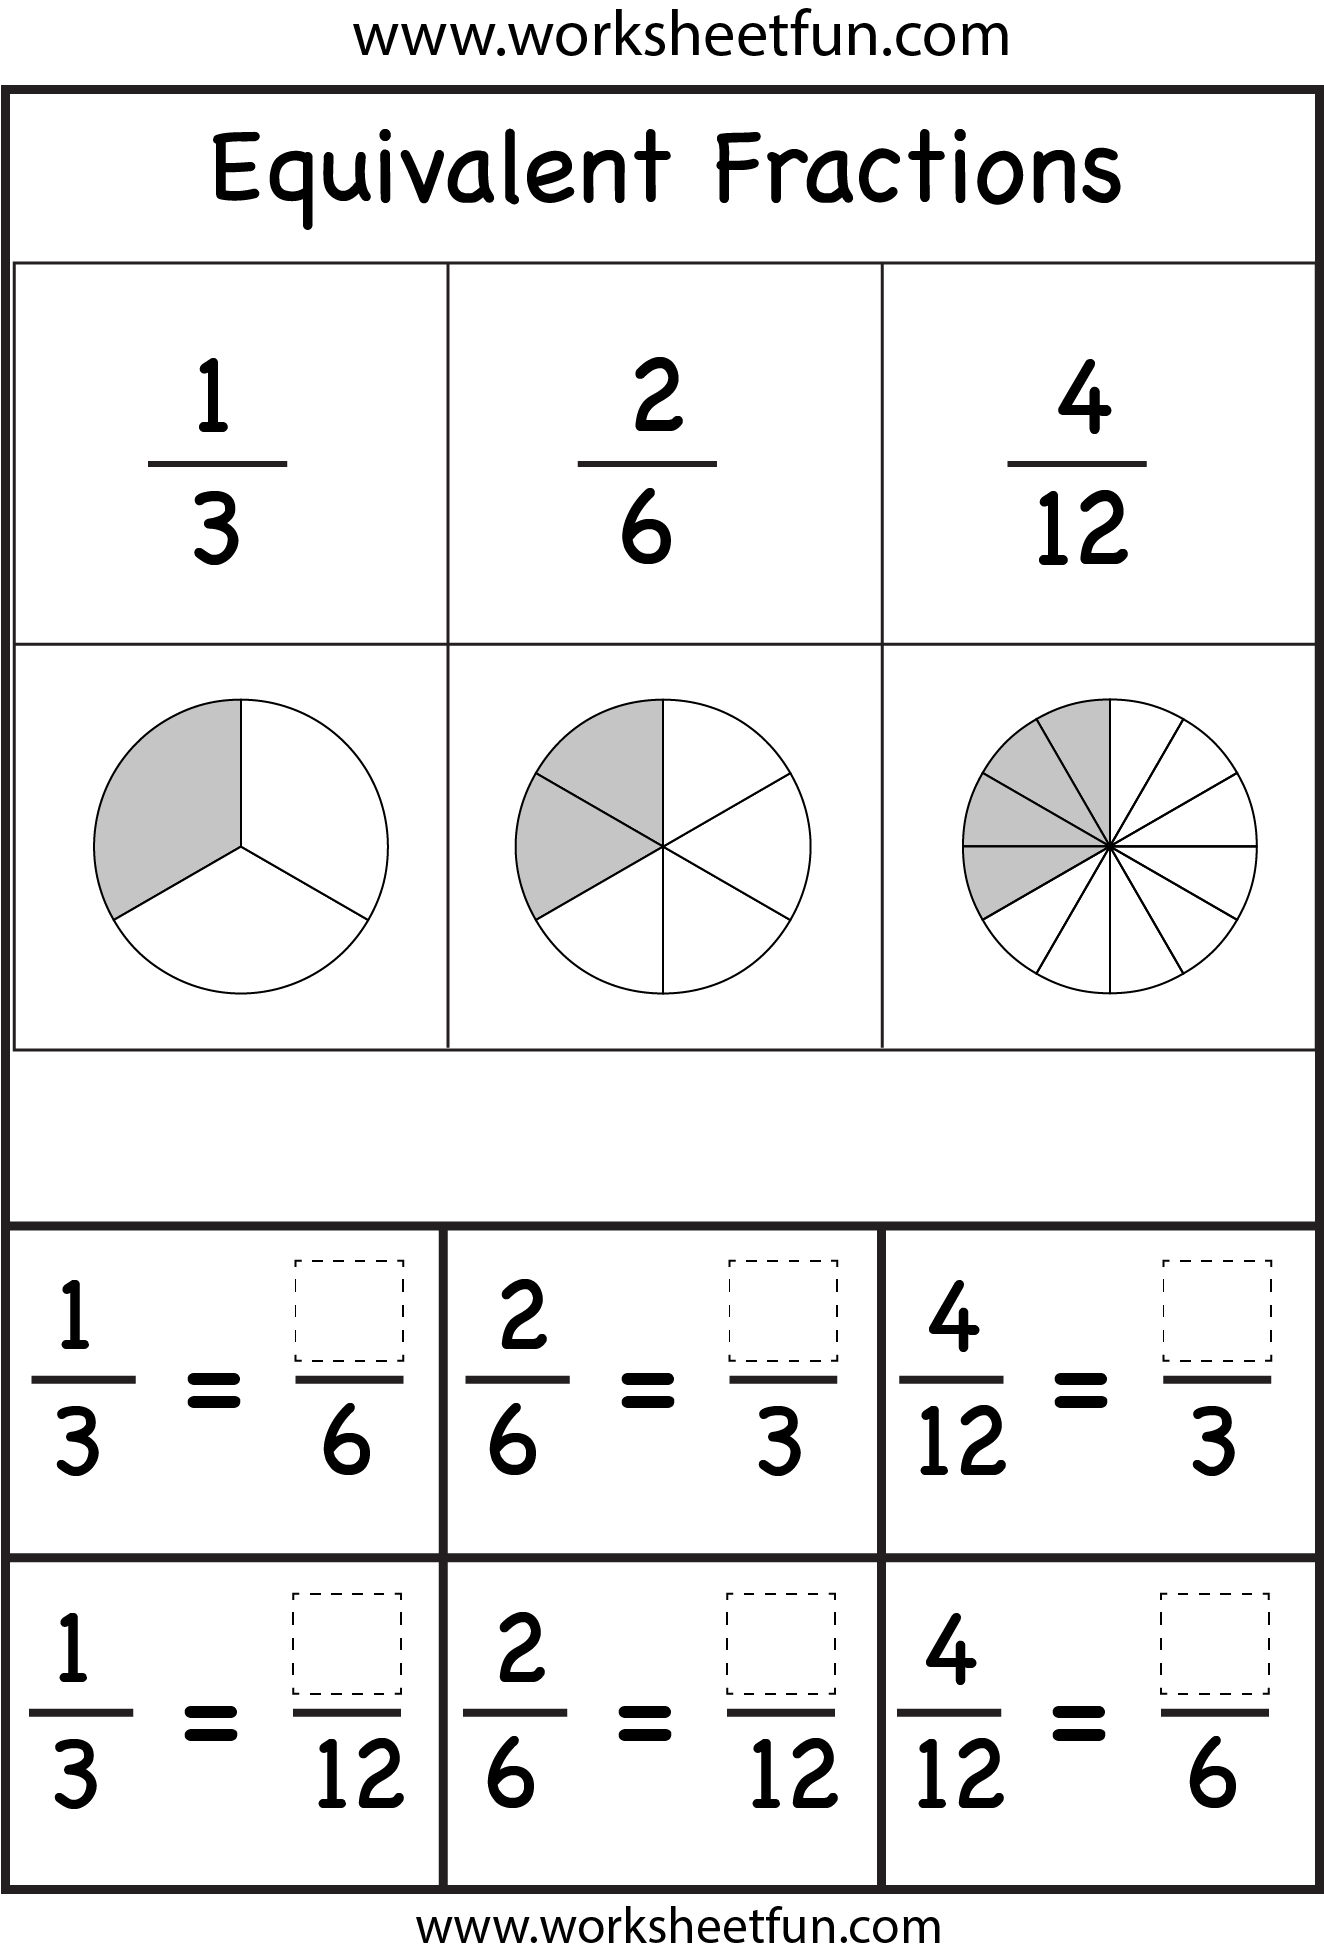 worksheet Equivalent Fraction Worksheet equivalent fractions worksheets printable pinterest worksheets